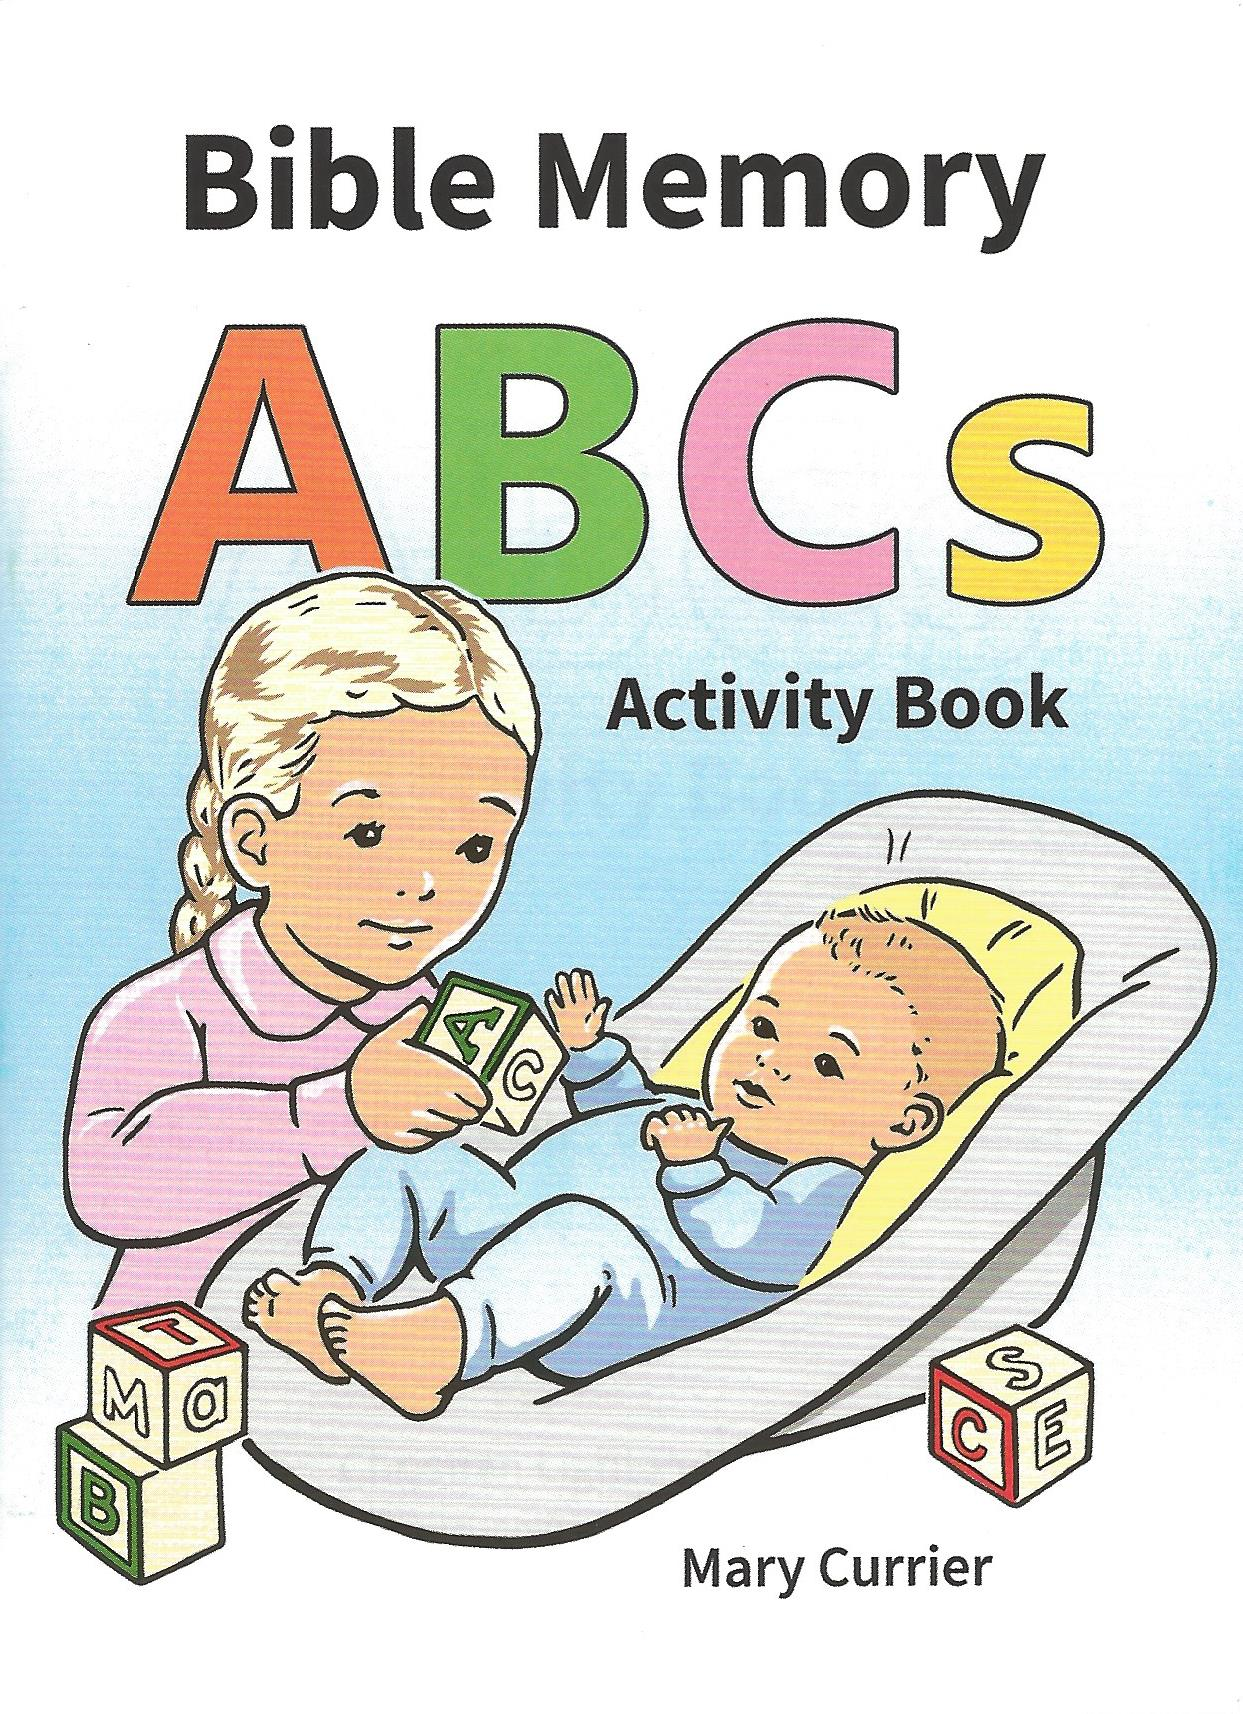 BIBLE MEMORY ABCs MINI ACTIVITY BOOK Mary Currier